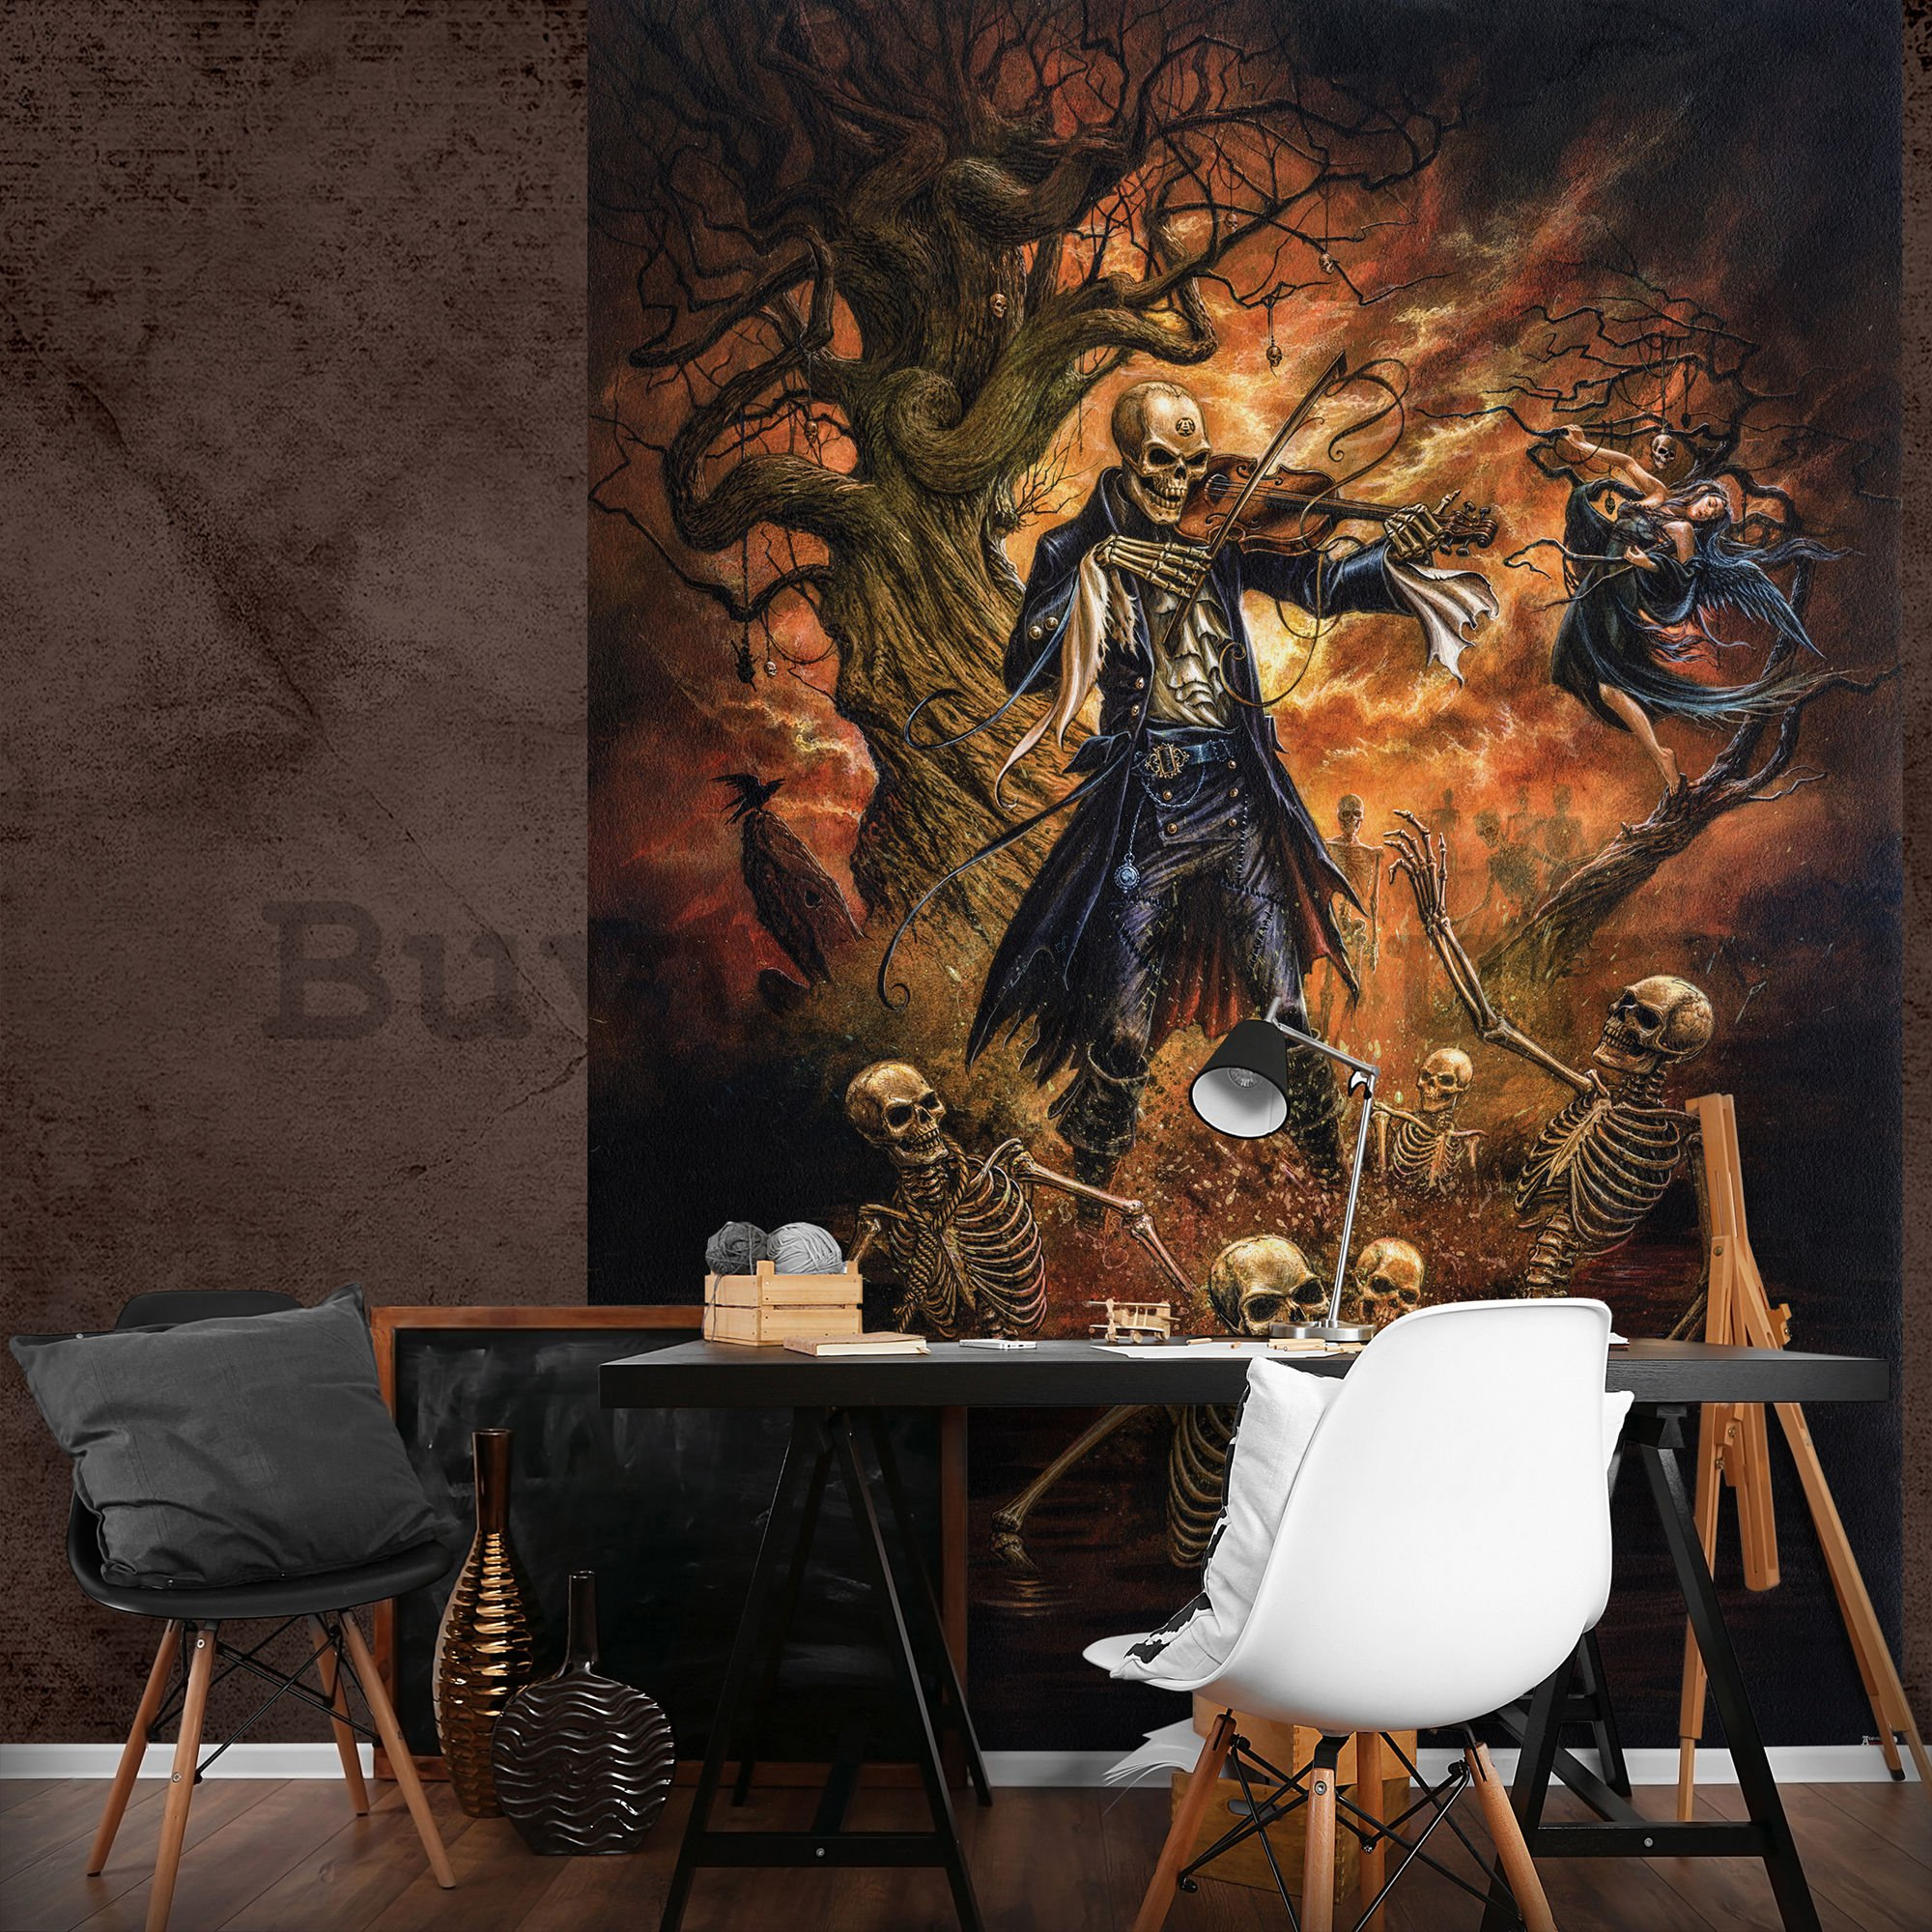 Wall mural: Between the skeletons - 254x184 cm